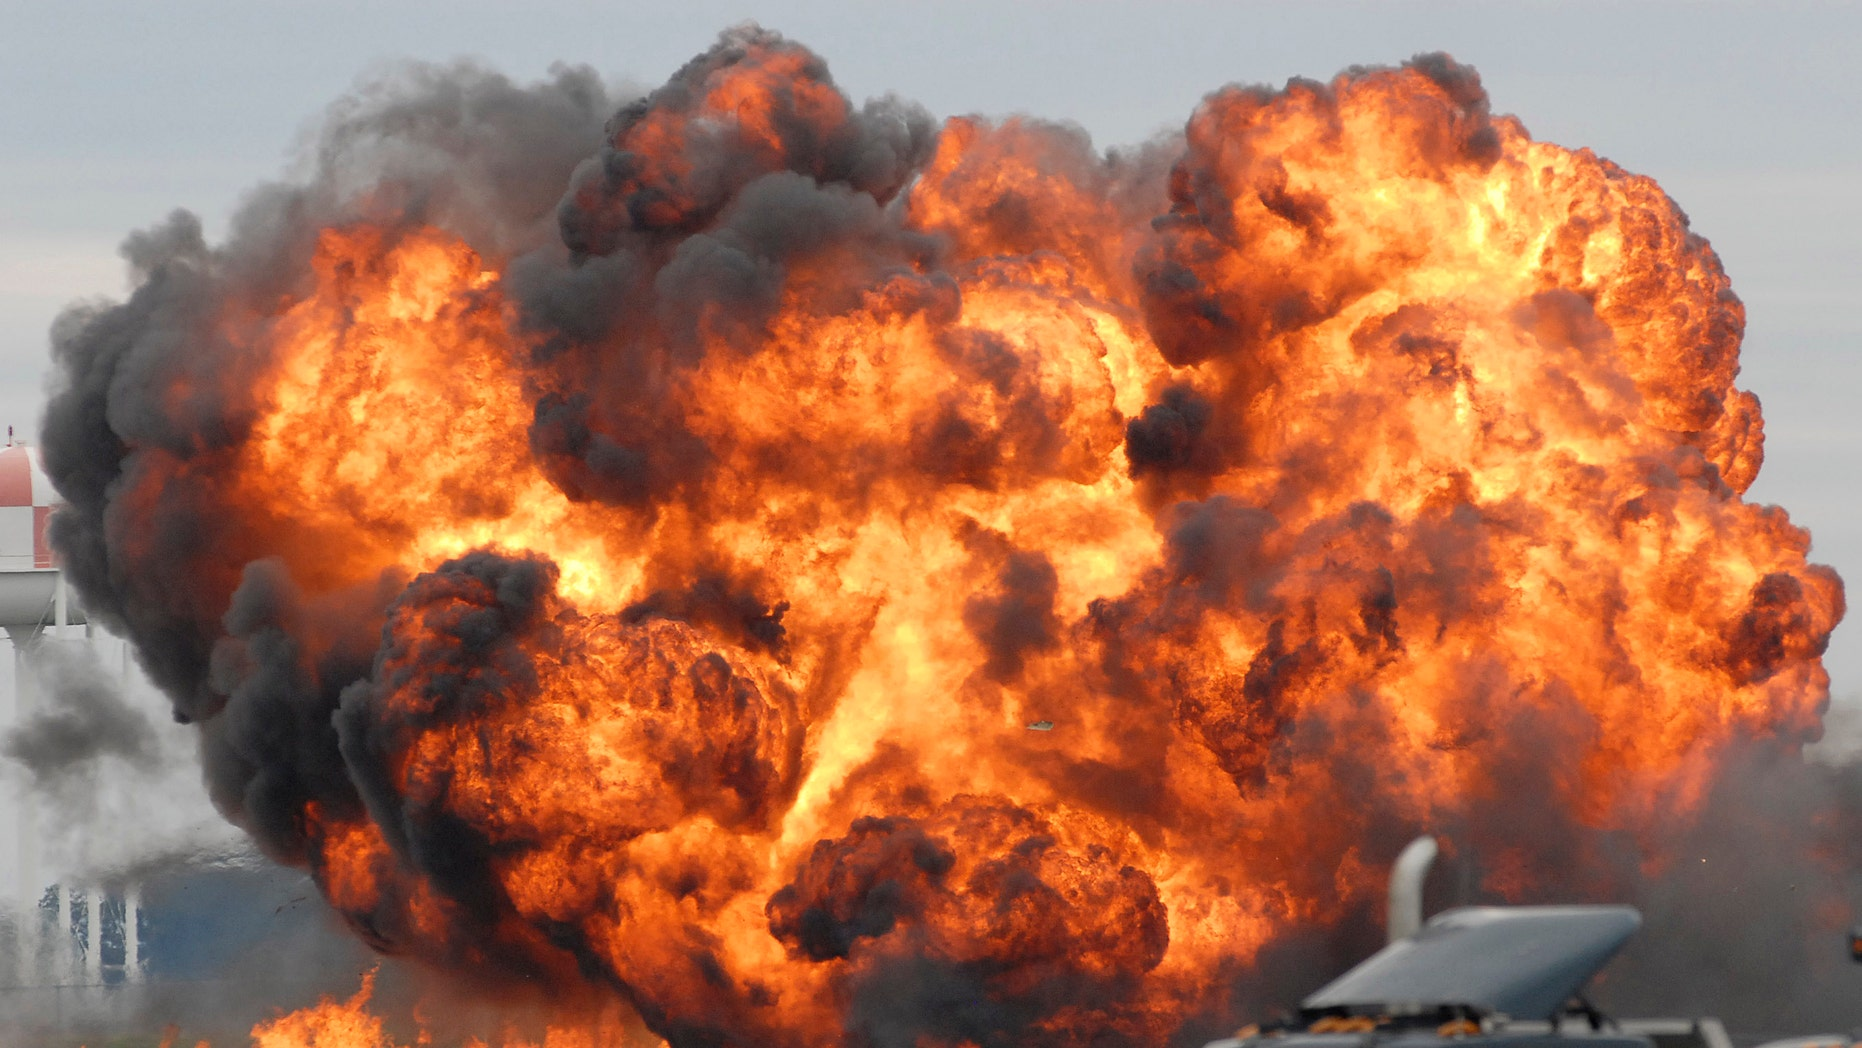 A single engine T-28 from the six-plane Trojan Horsemen Demonstration Flight Team crashes and explodes during a performance at the Thunder Over the Blue Ridge Open House and Air Show, Saturday, Sept. 17, 2011 at the 167th Airlift Wing in Martinsburg, W.Va.